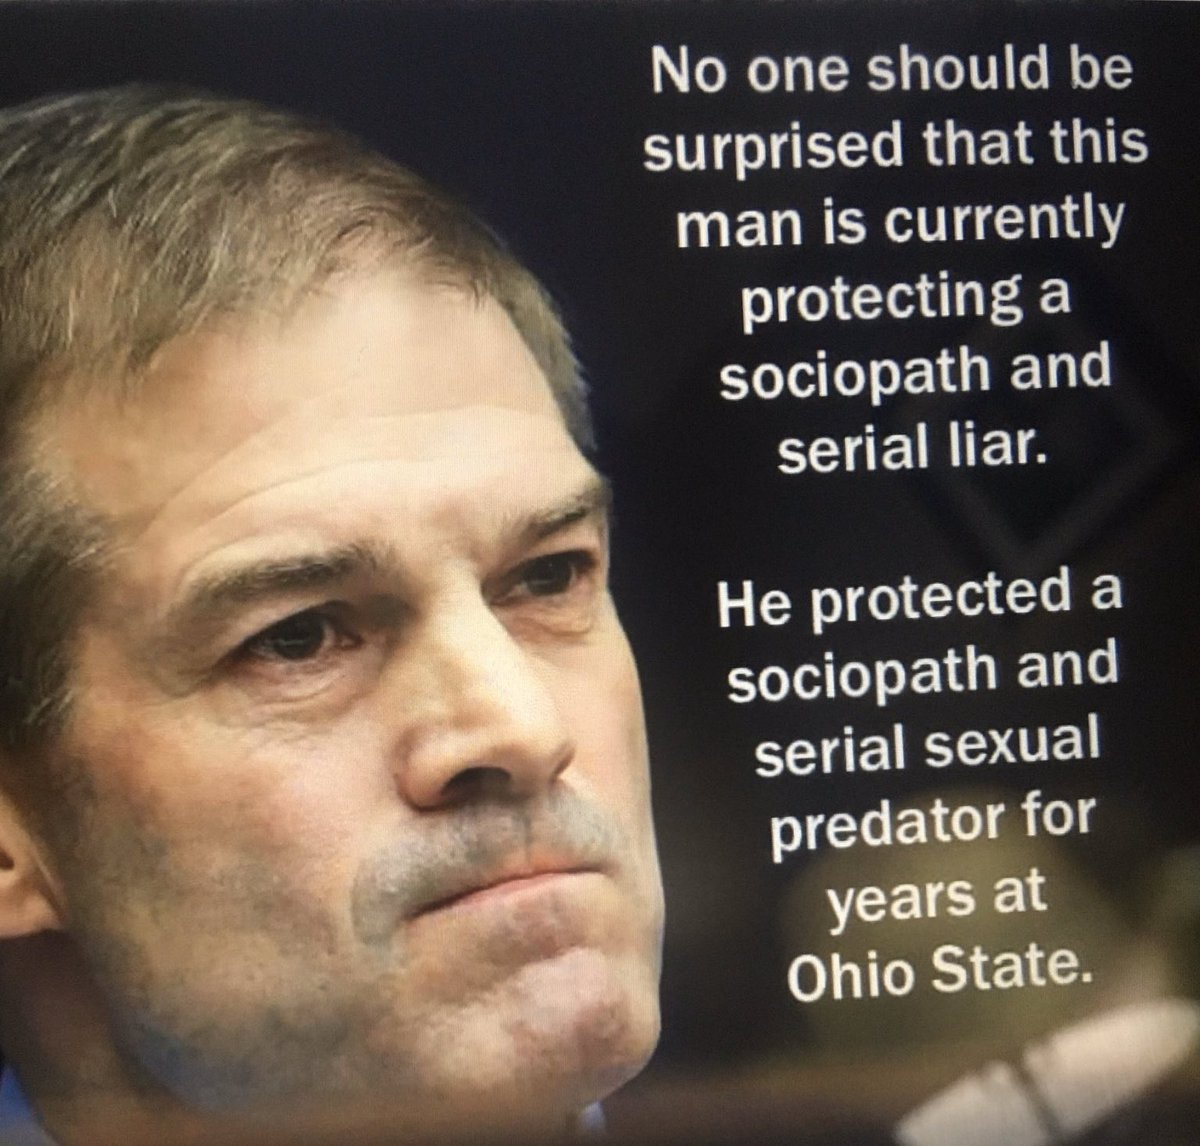 @Jim_Jordan Why do you tweet stupid stuff like this? It just means I have to weigh in with...  Resign, you vile, disgusting excuse for a human being. #JimJordanKnew #jimjordanresign #JimJordanBetrayedWrestlers #JimJordanKnew #jimjordanresign #JimJordanBetrayedWrestlers See below for why...👇